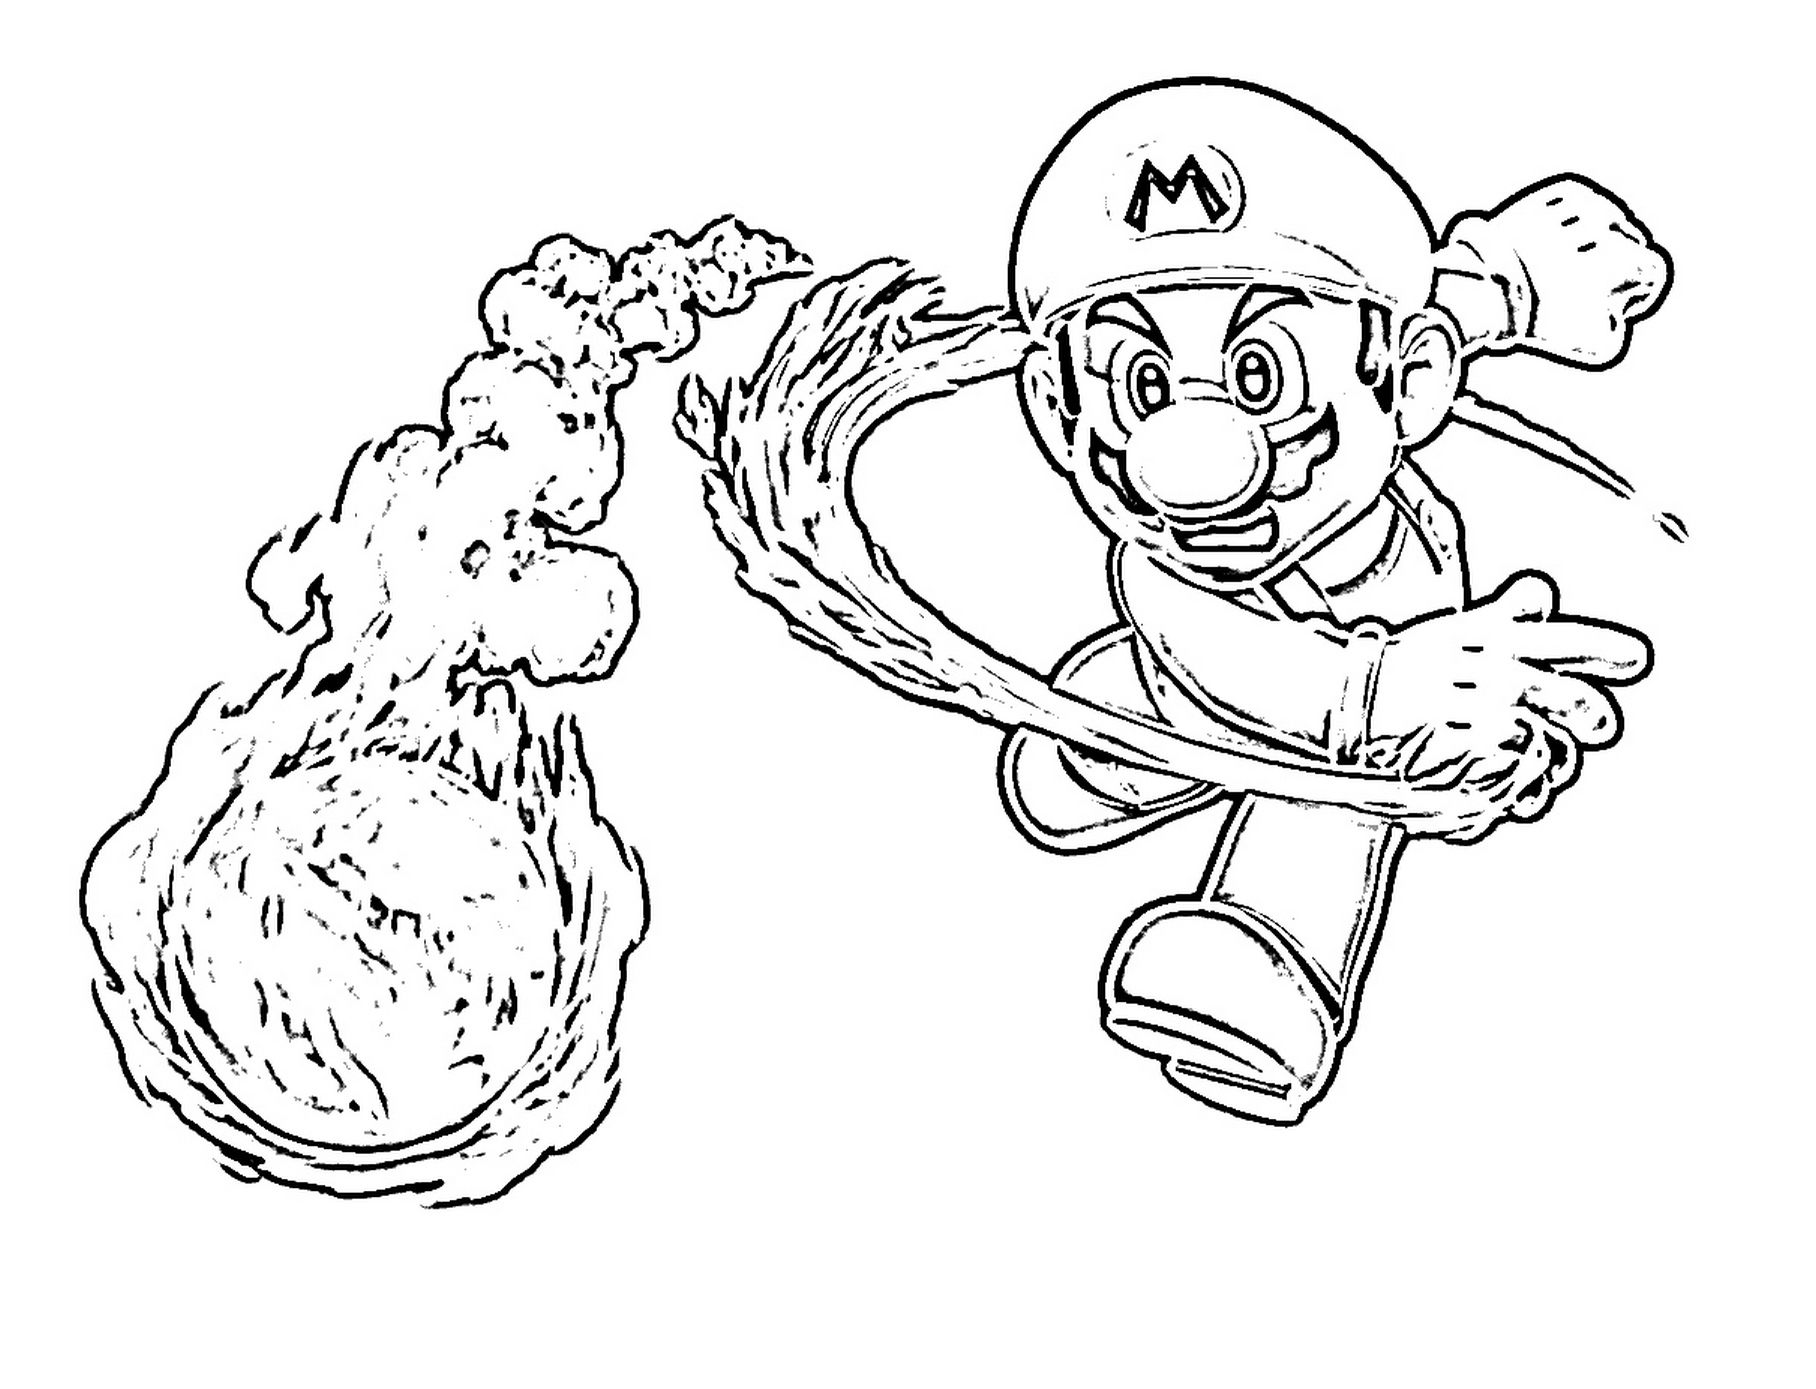 Coloring Pages : Super Mario Bros Coloring Pages At Getcolorings Com - Mario Coloring Pages Free Printable